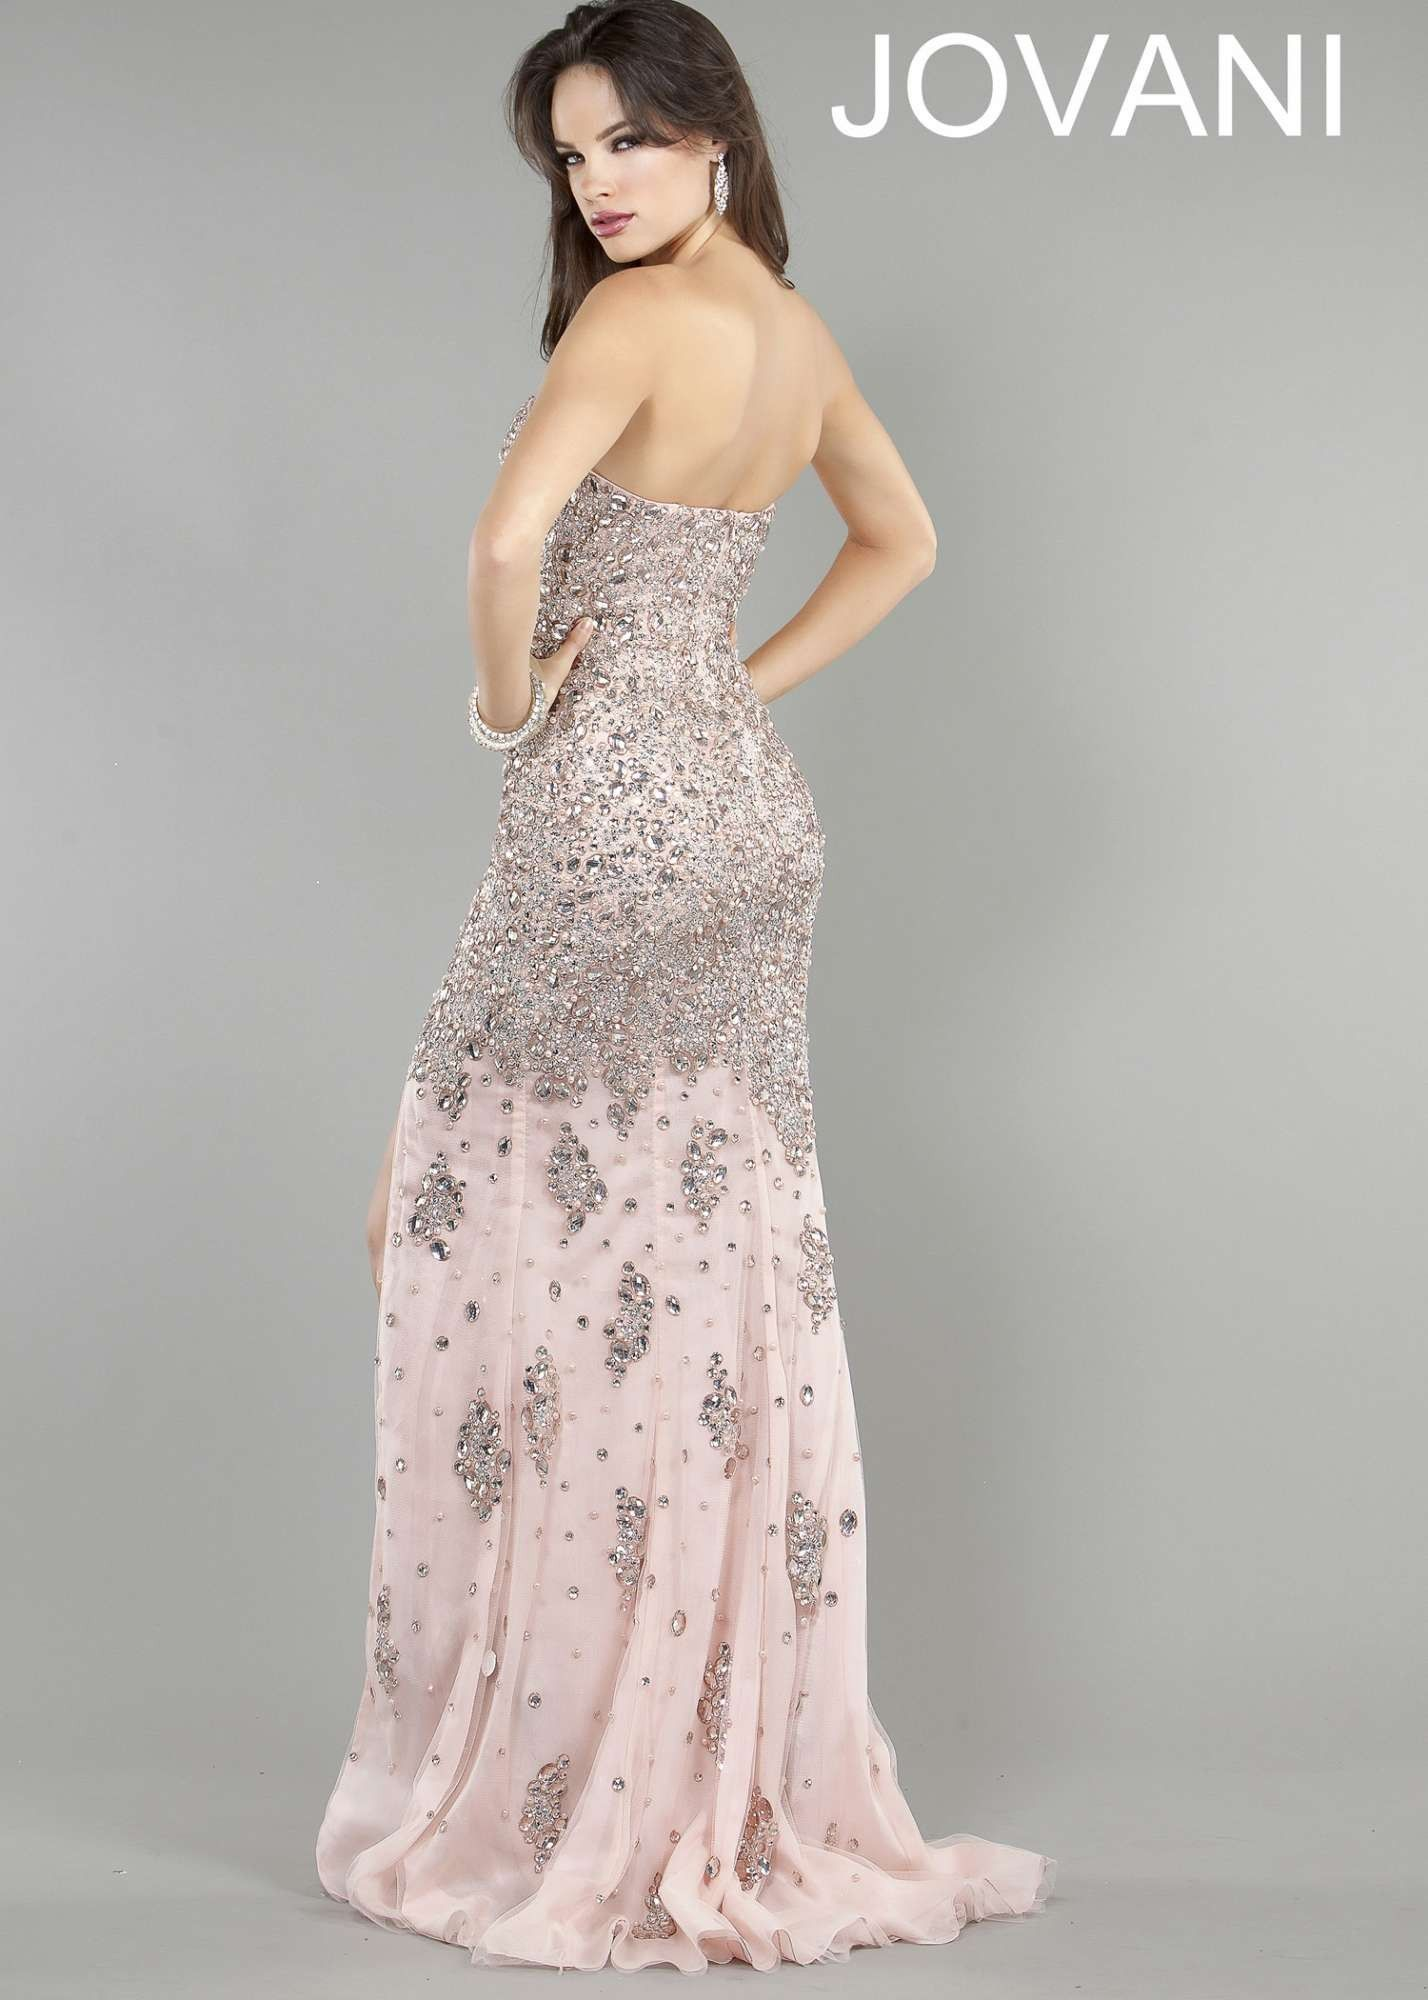 Jovani fitted long dress gray color dress pinterest